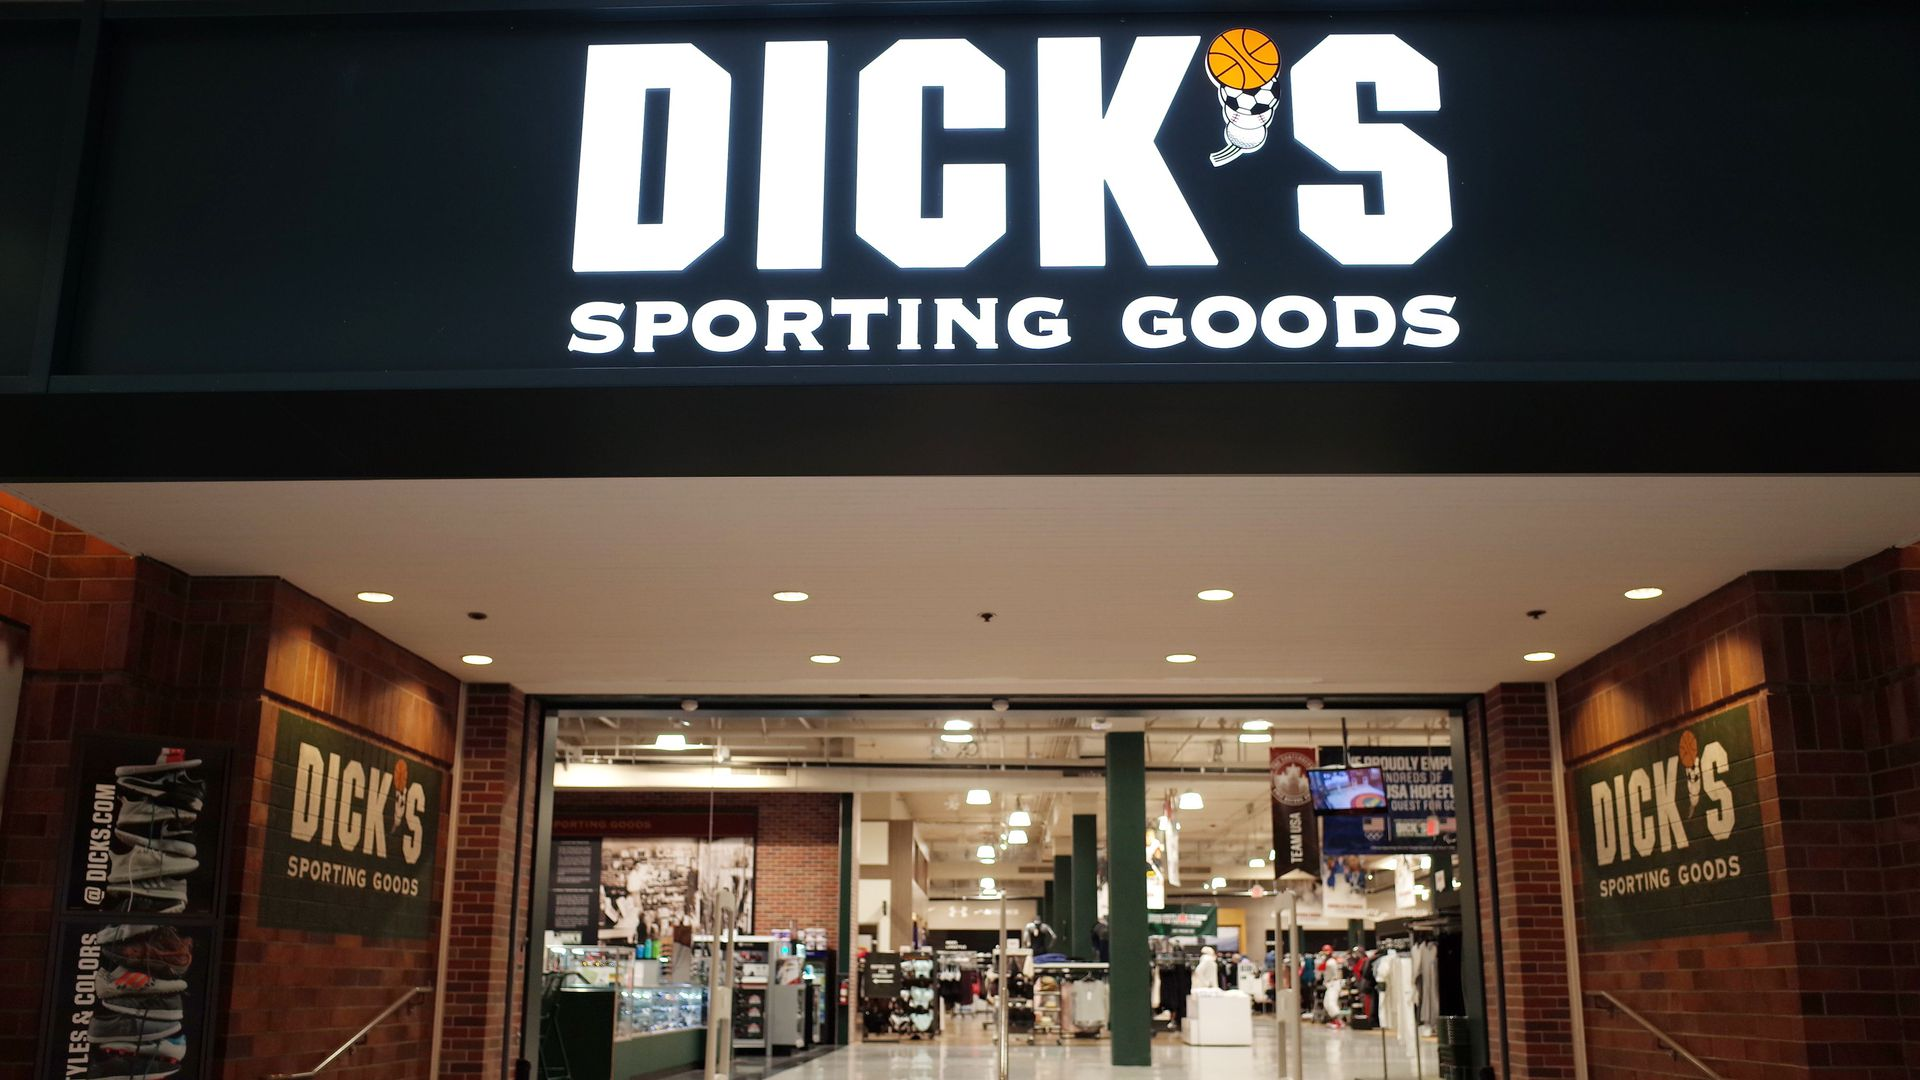 Dick's Sporting Goods location